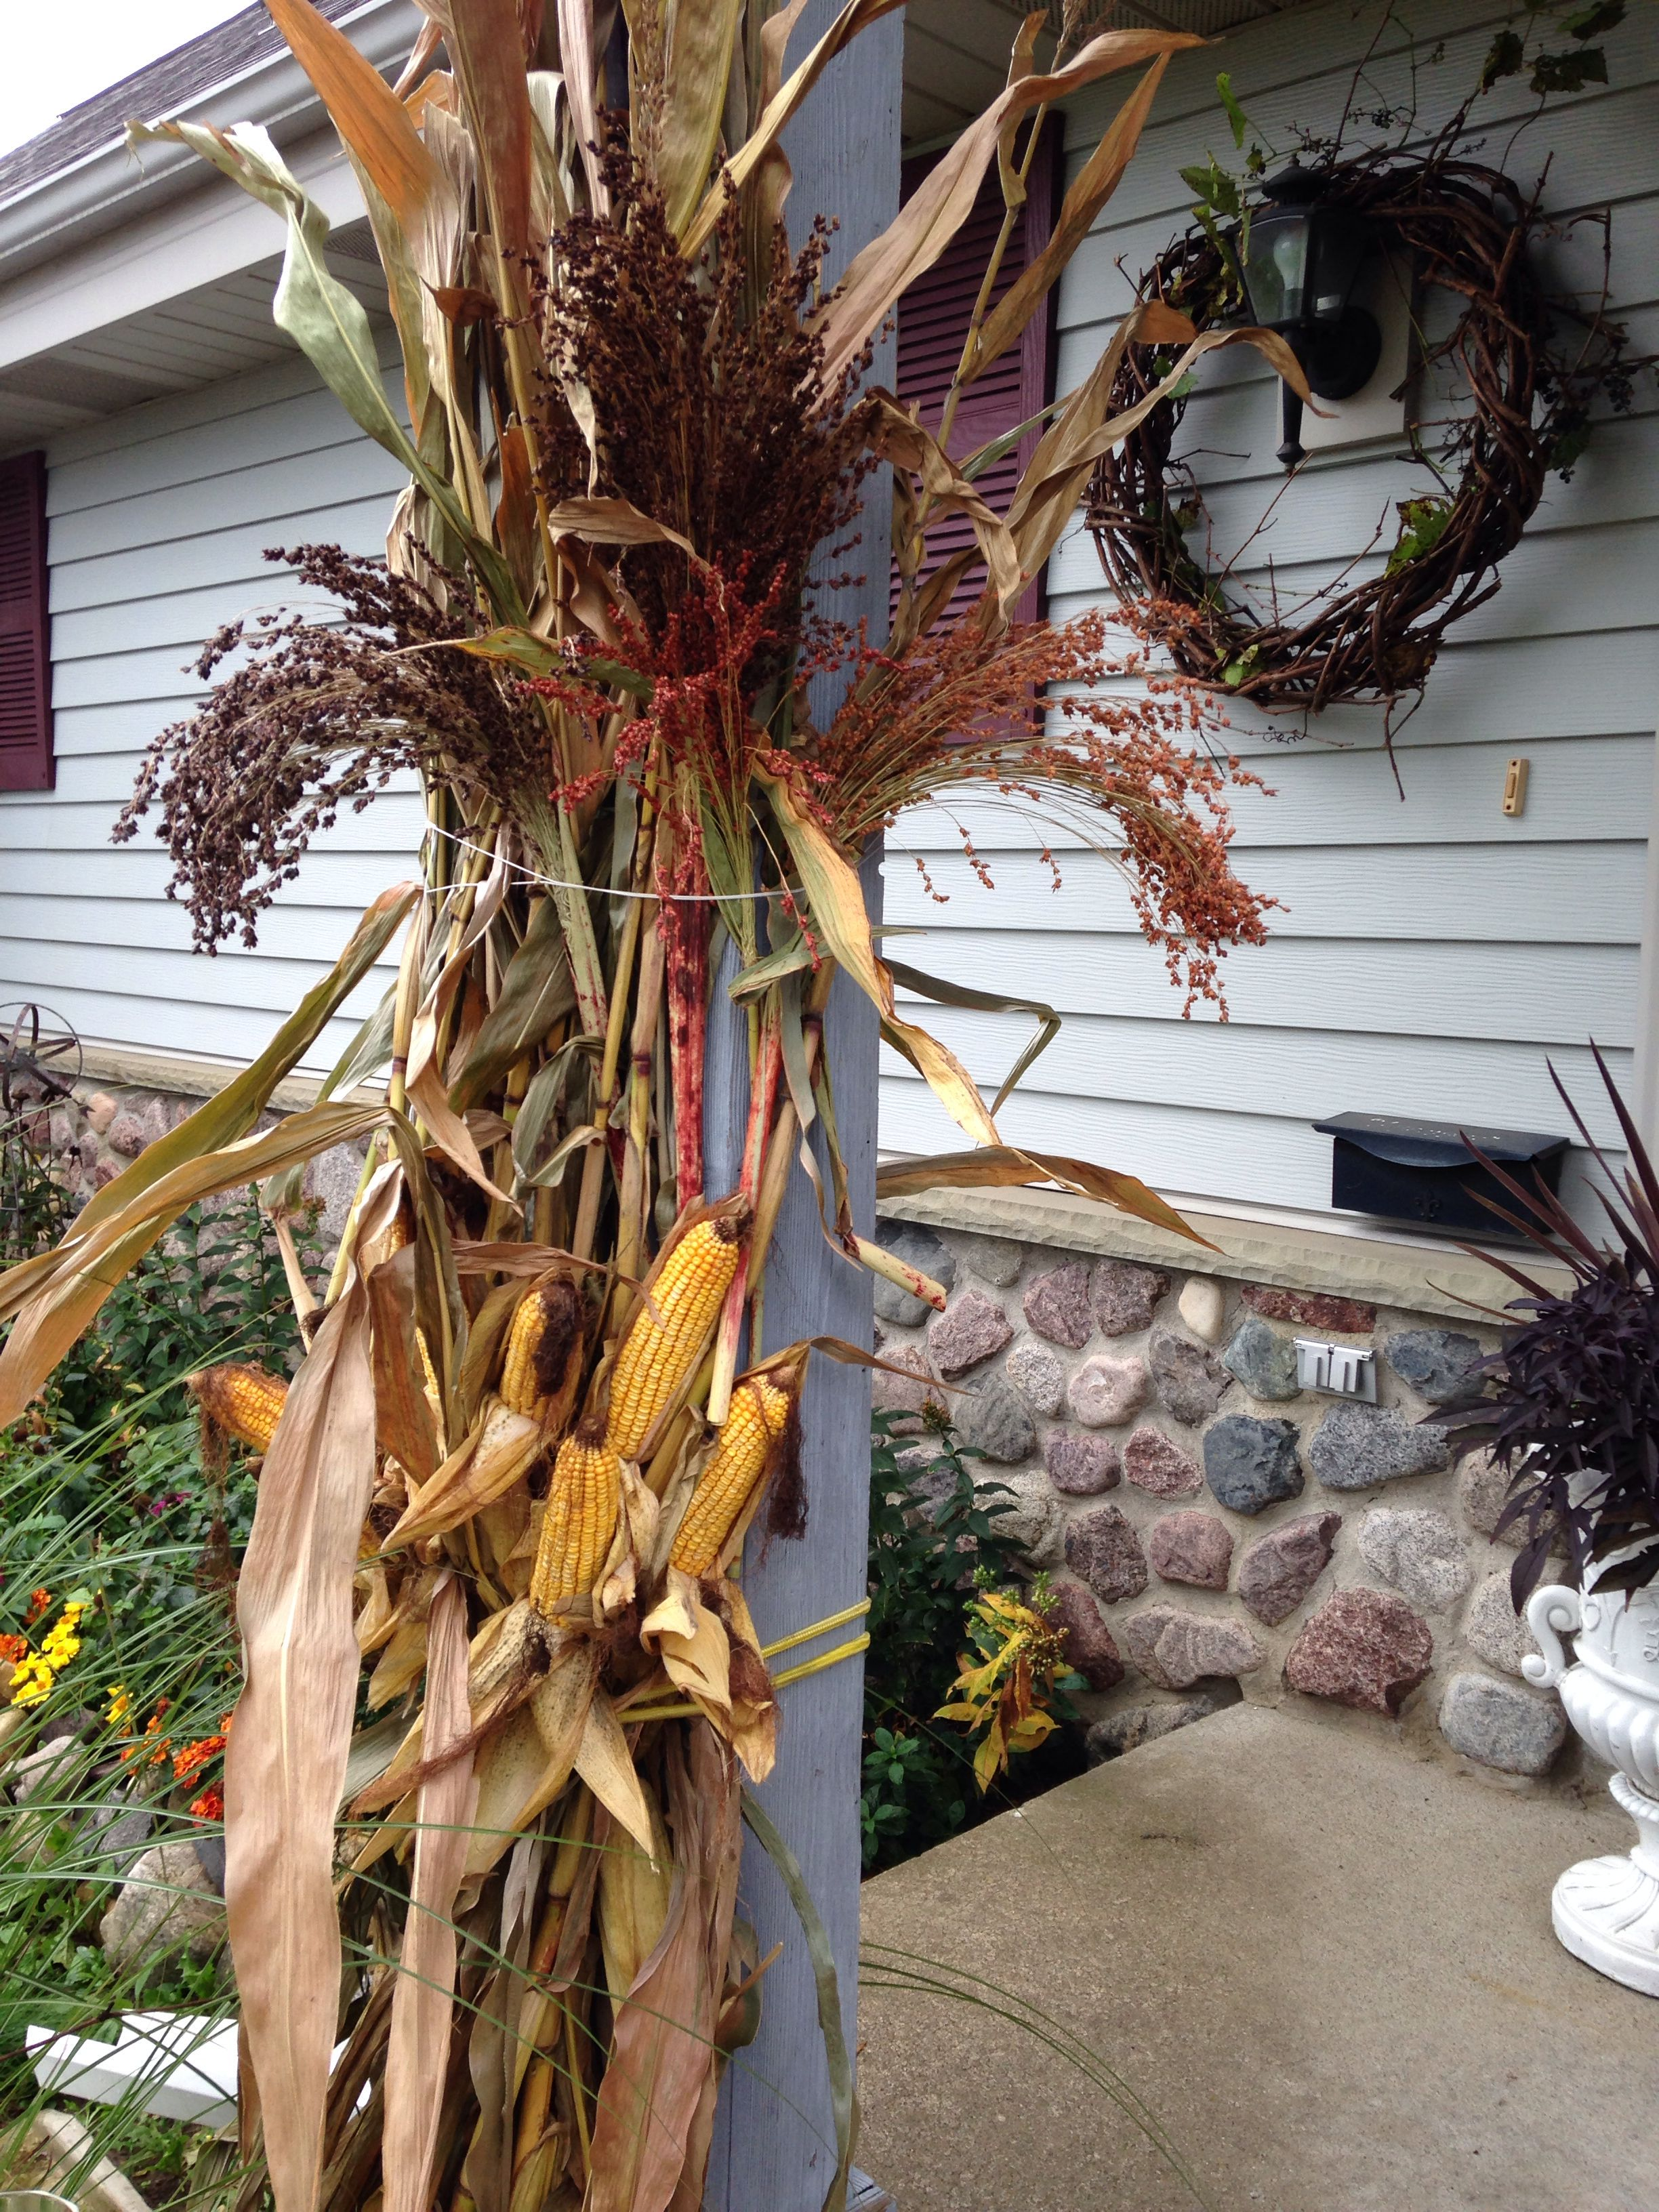 Broom Corn Added With Corn Stalks Adds A Nice Touch Broom Corn Fall Planters Fall Decor